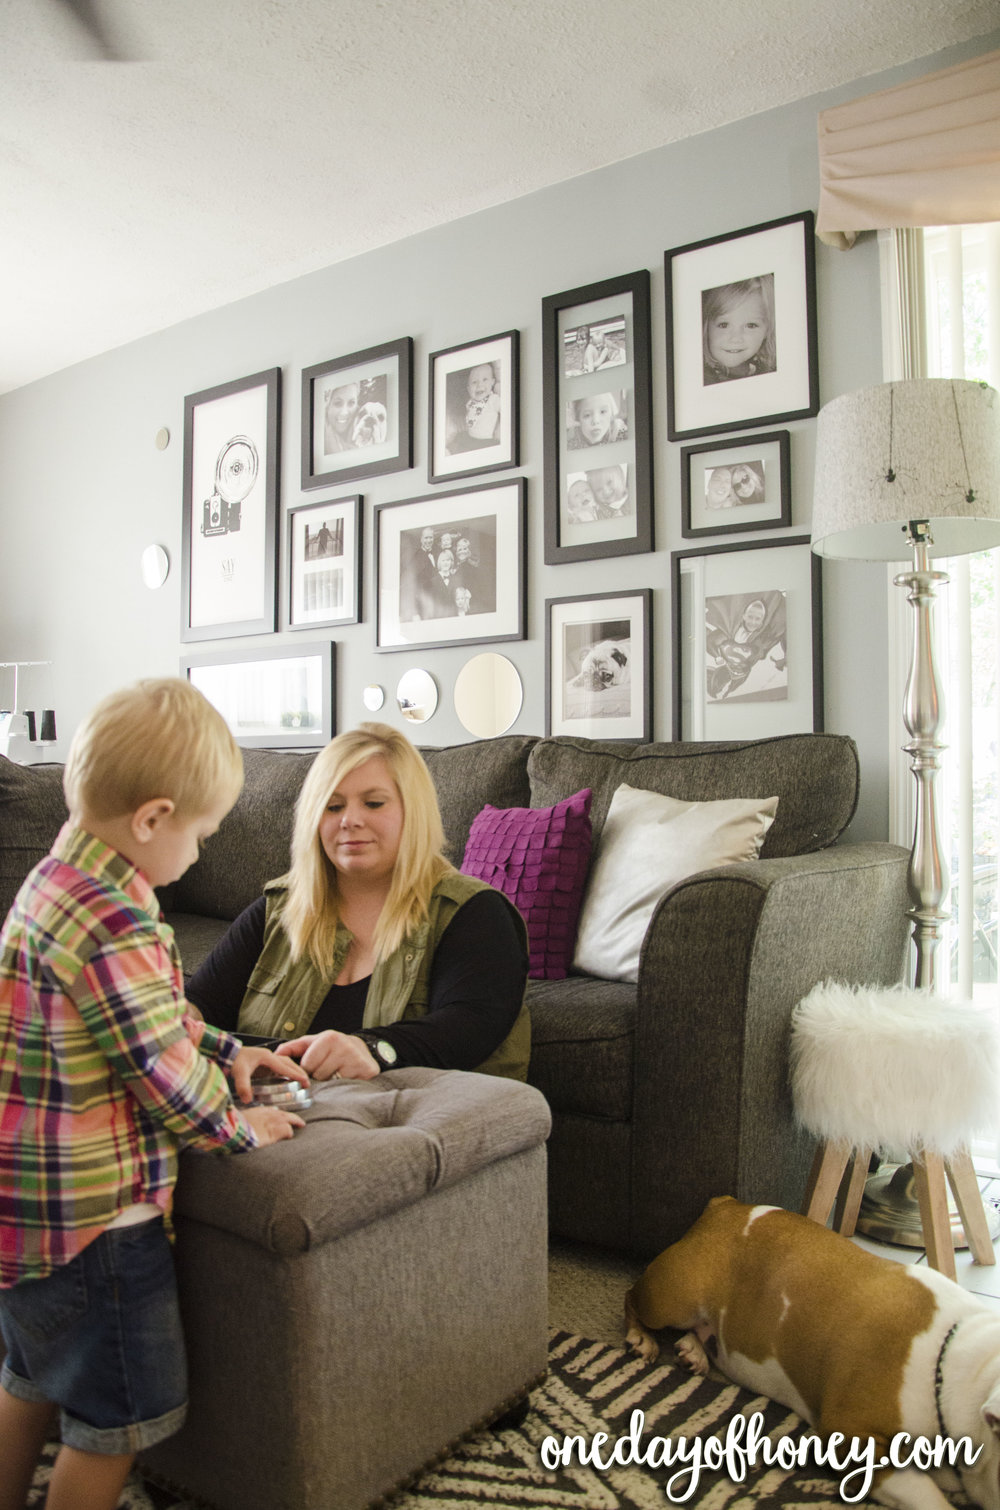 Meet Cassandra!  She has a natural gift of interior decoration, and is a master of home decor.  Check out our fall home tour with Cassandra, as well as a look at her business, Smore Kids Company! Click here: http://bit.ly/cassandrahomedecor